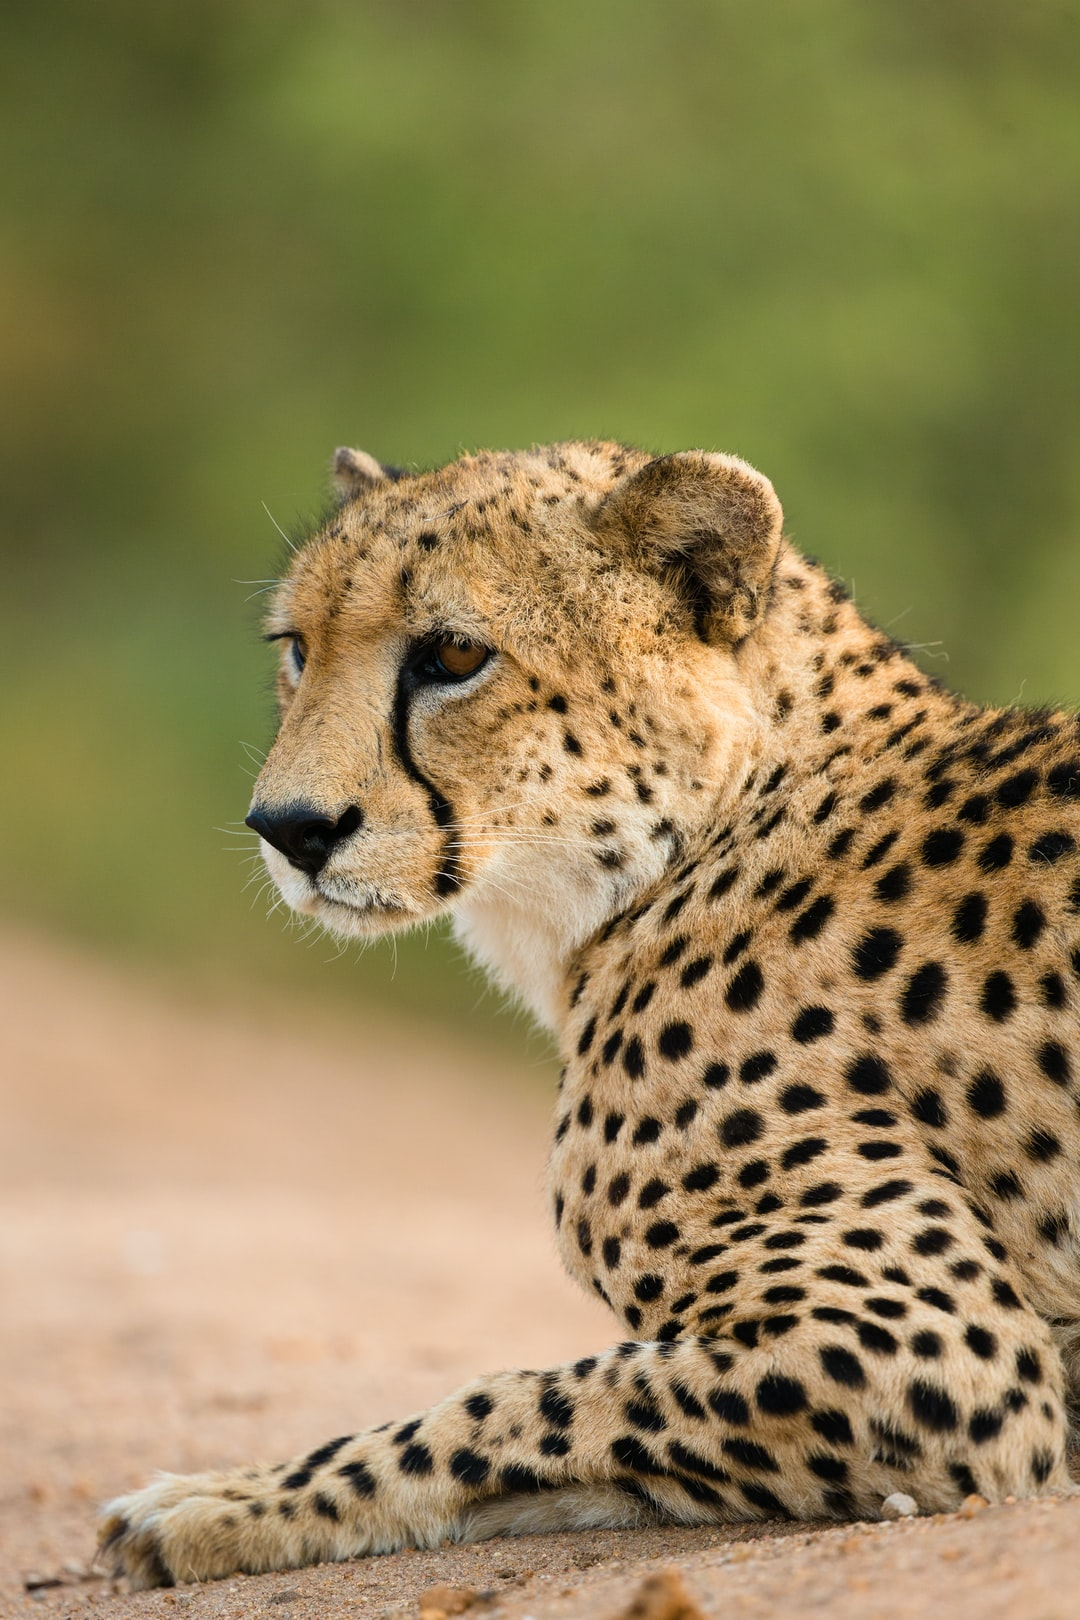 A beautiful Cheetah captured in the greater Kruger area.